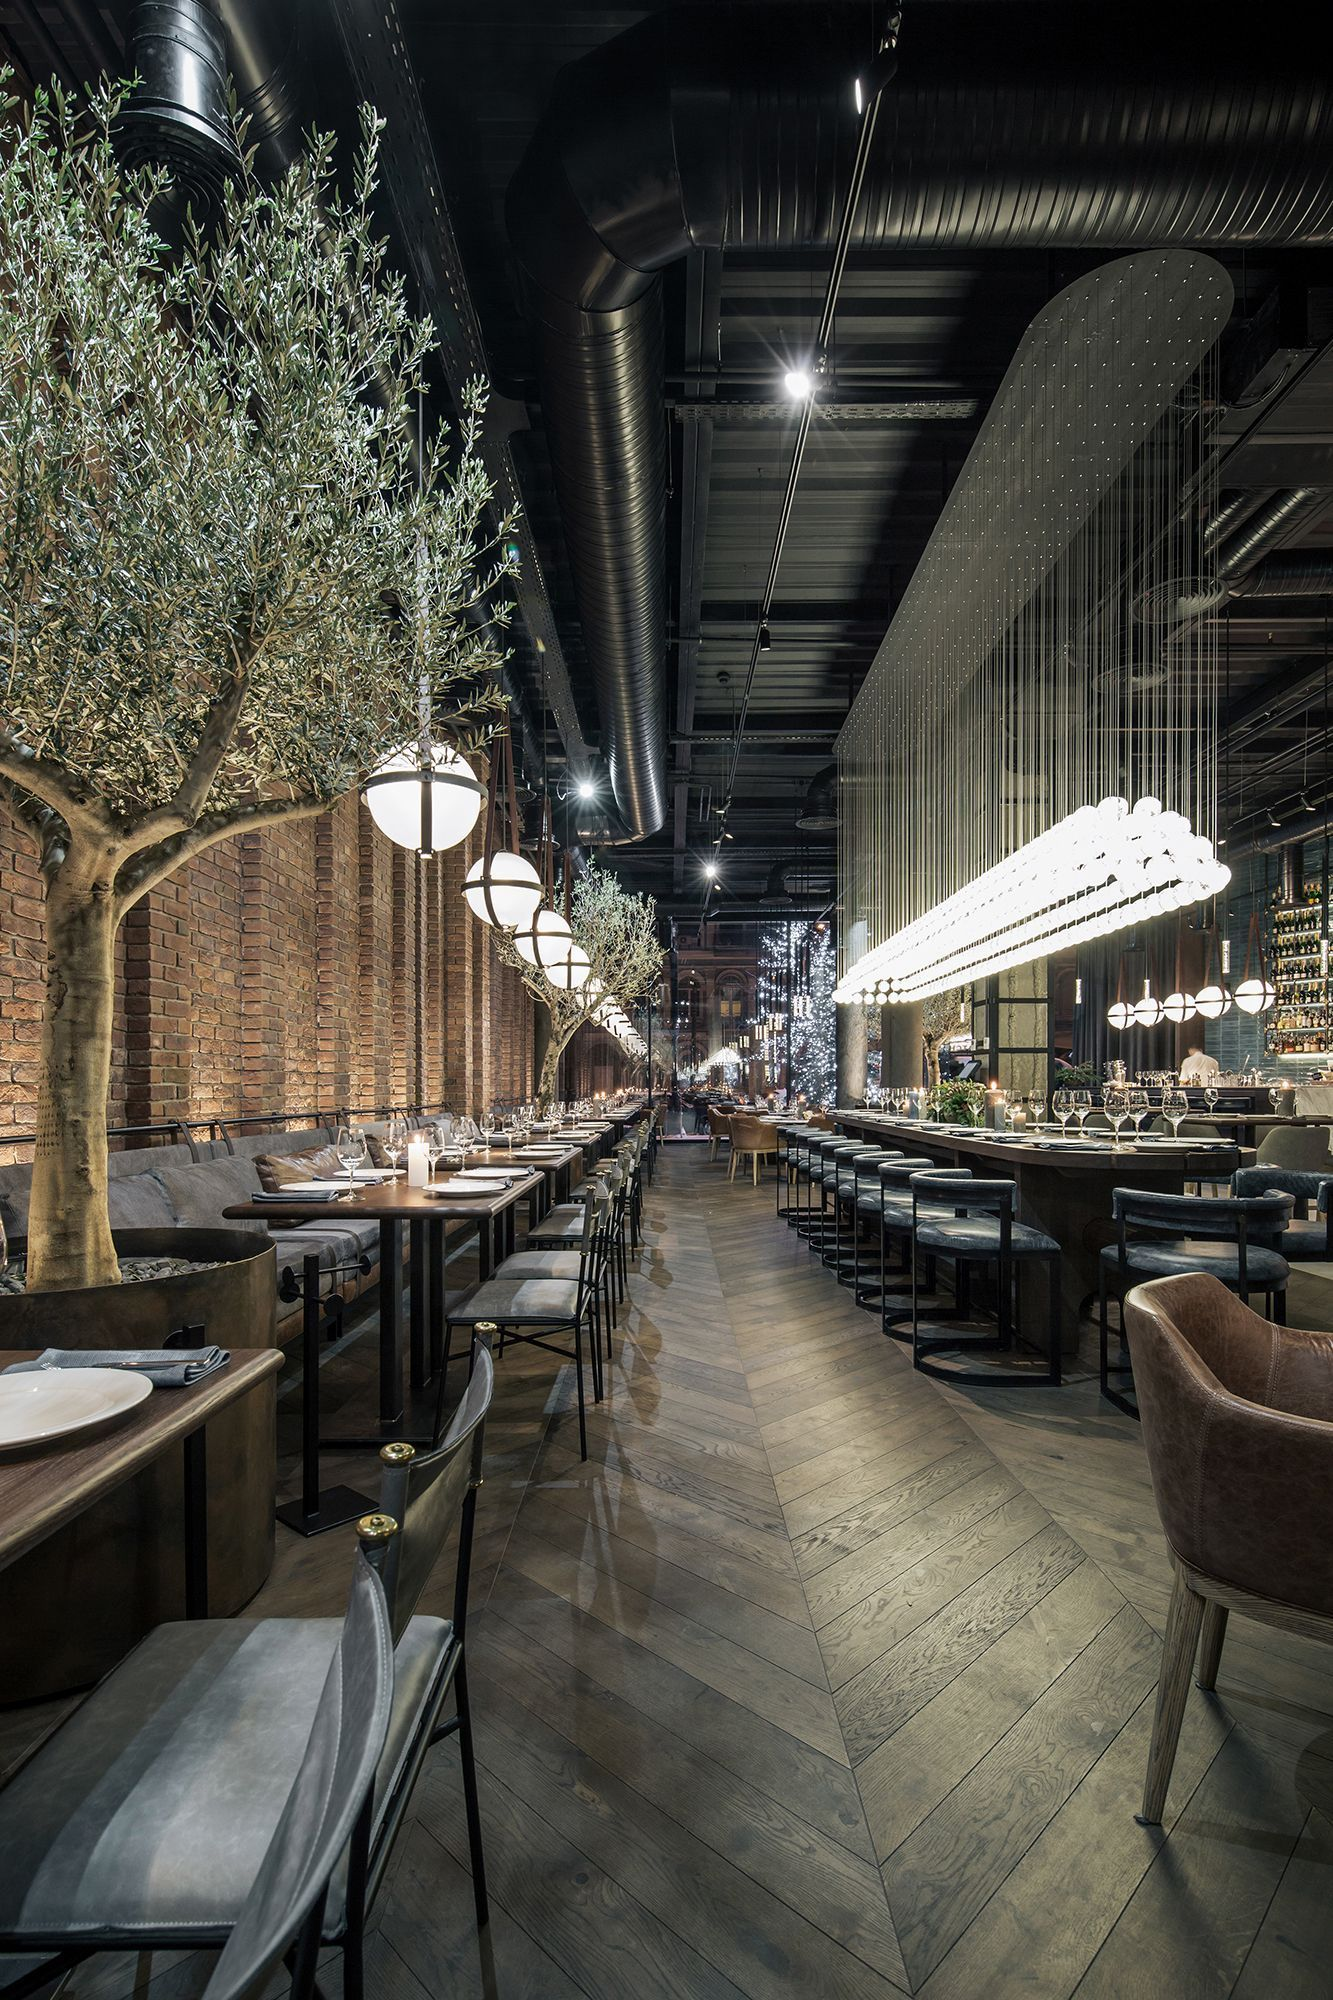 The Most Inspiring Vintage Home Design Projects Following The Latest Trends Vintage Indu Bar Design Restaurant Restaurant Design Restaurant Interior Design